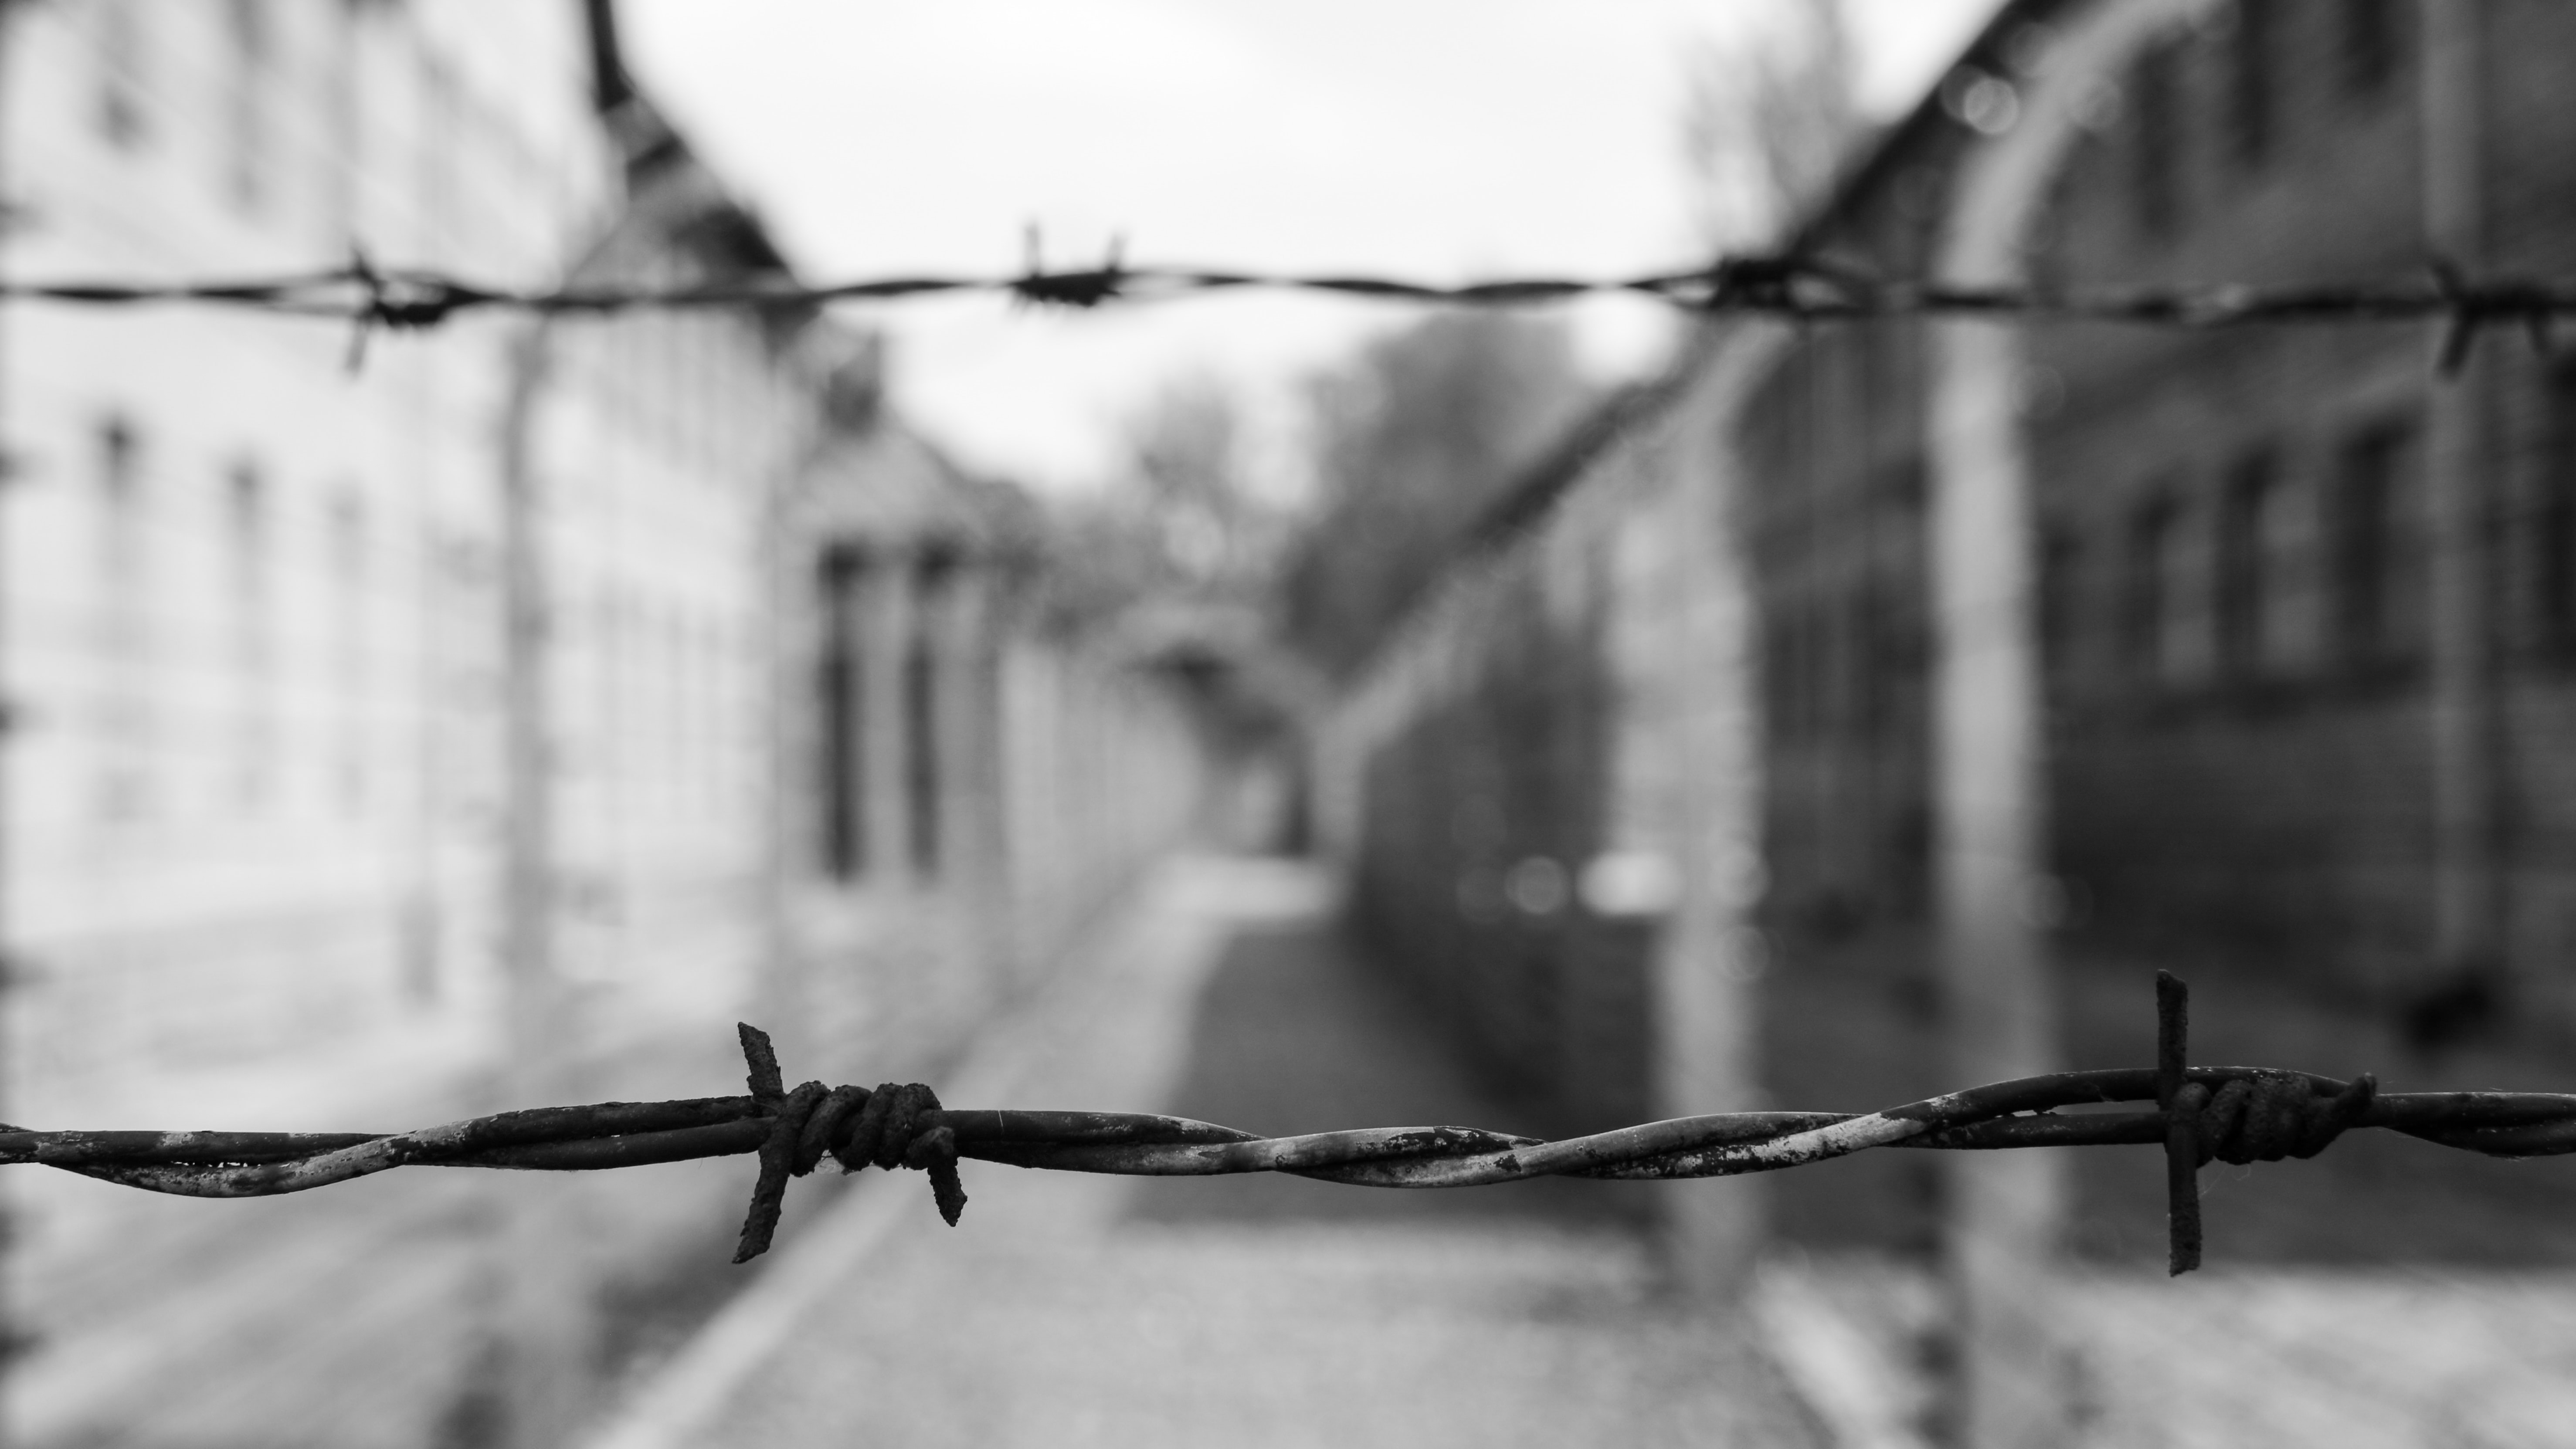 Remember Our Chains: The State of the Persecuted Church